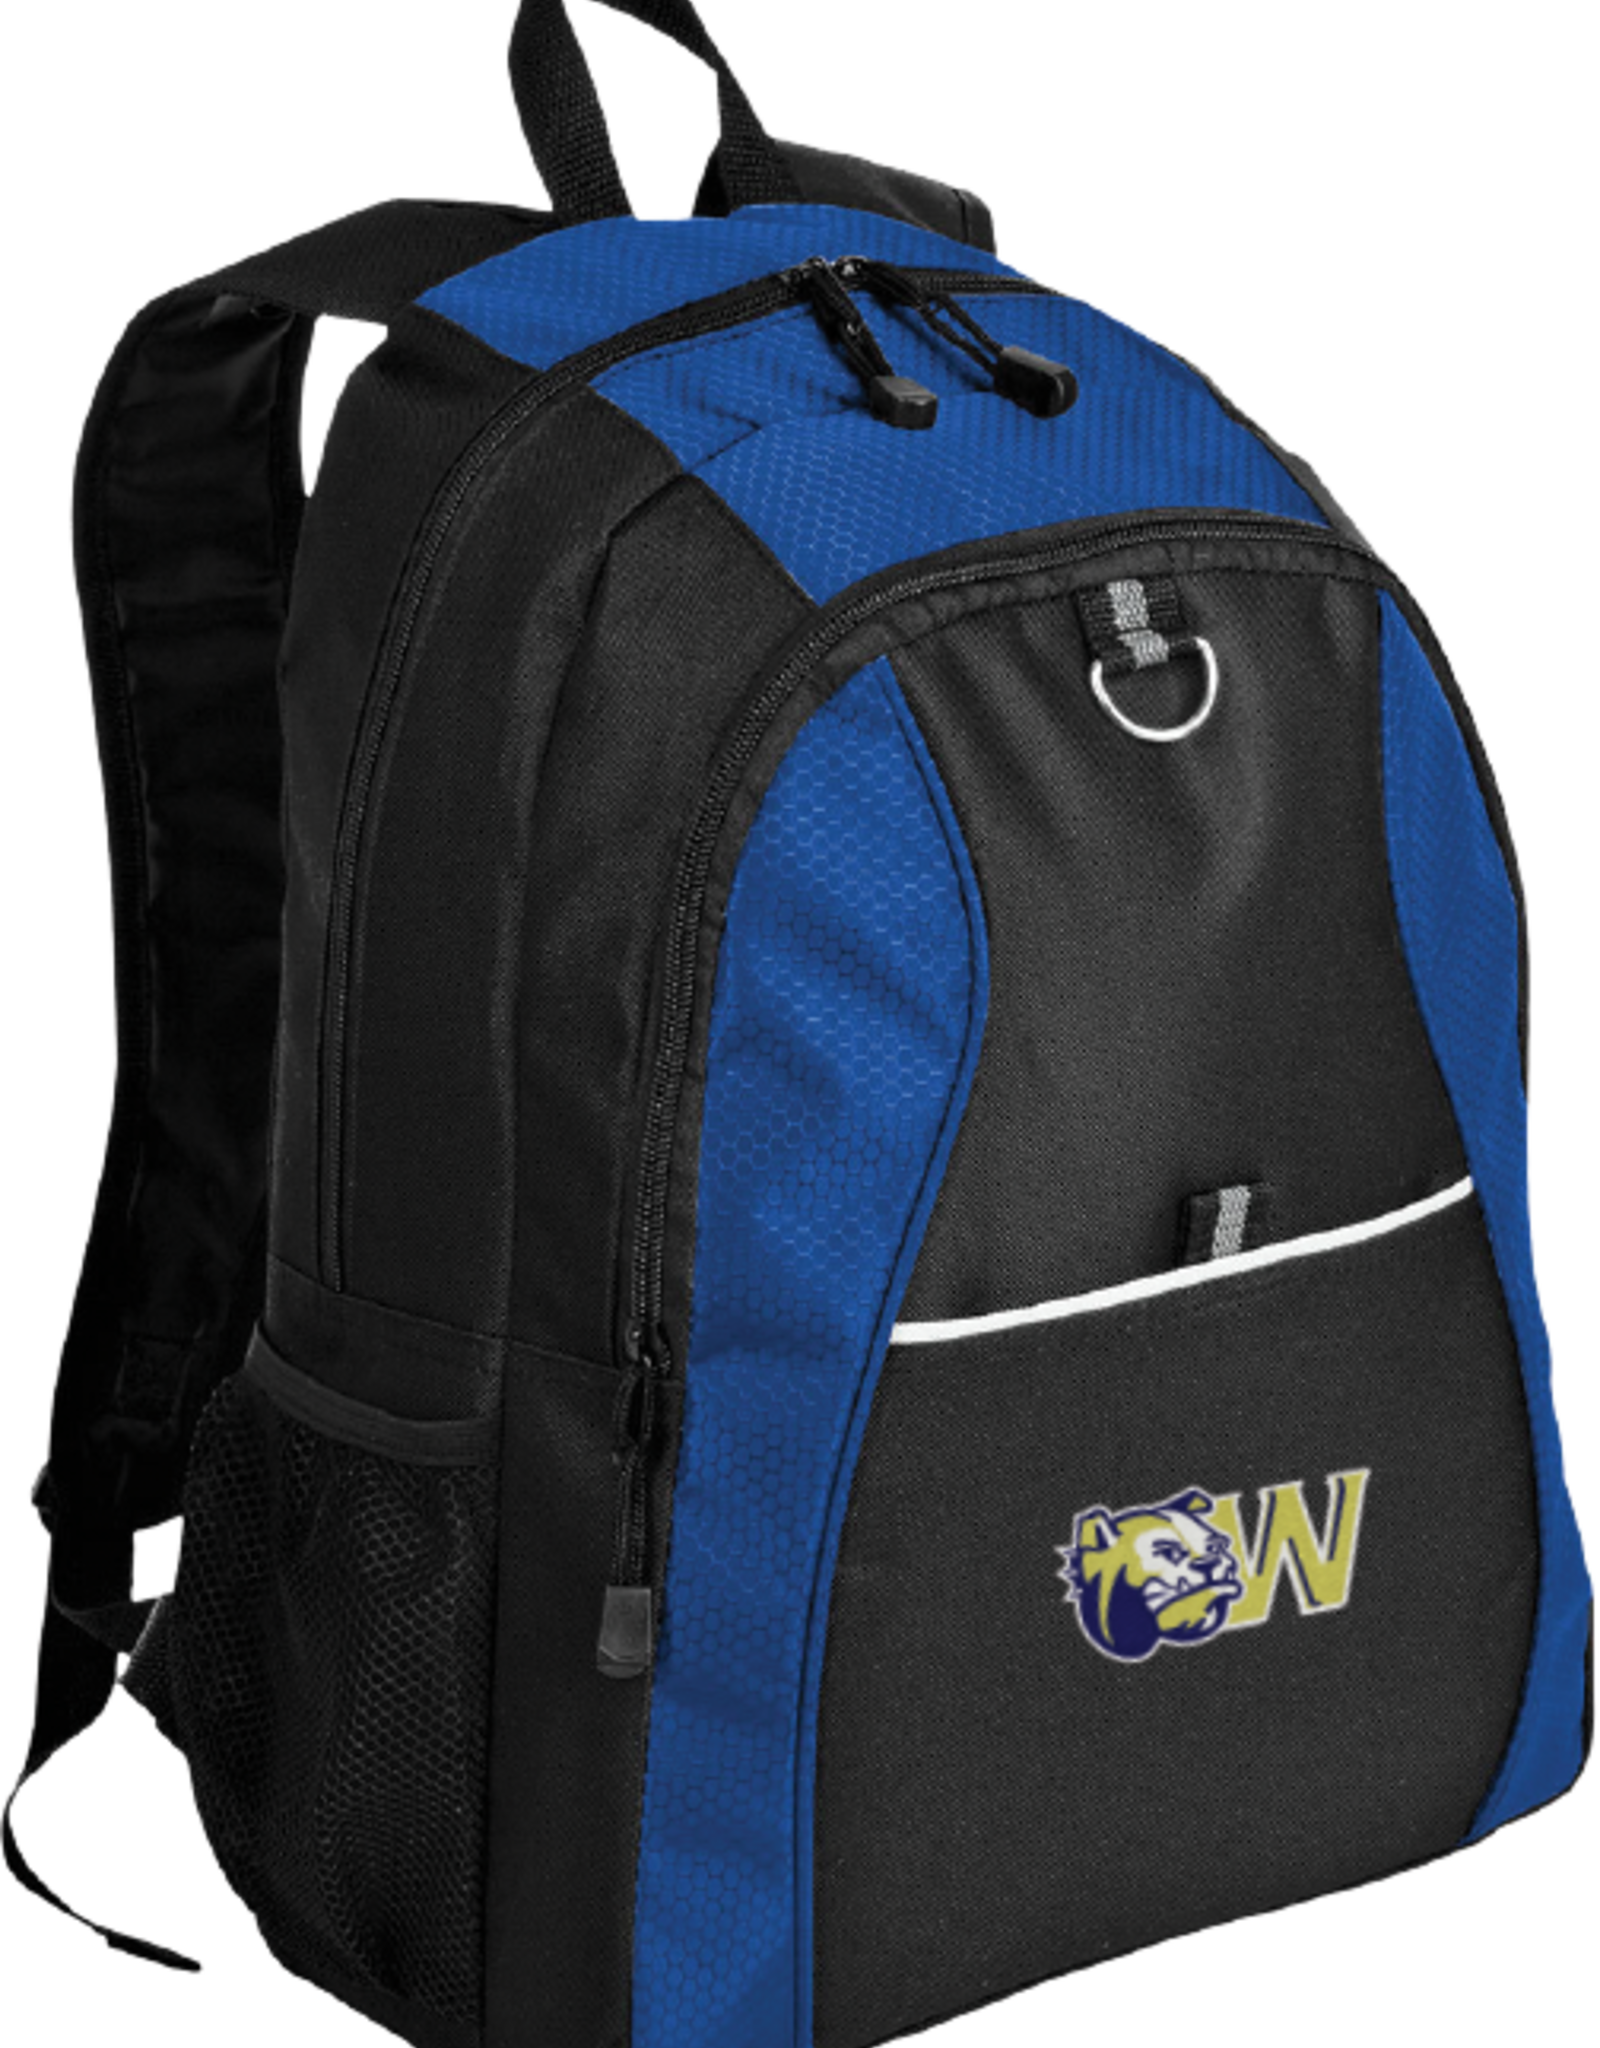 Port Authority Contrast Honeycomb Backpack Black and Blue